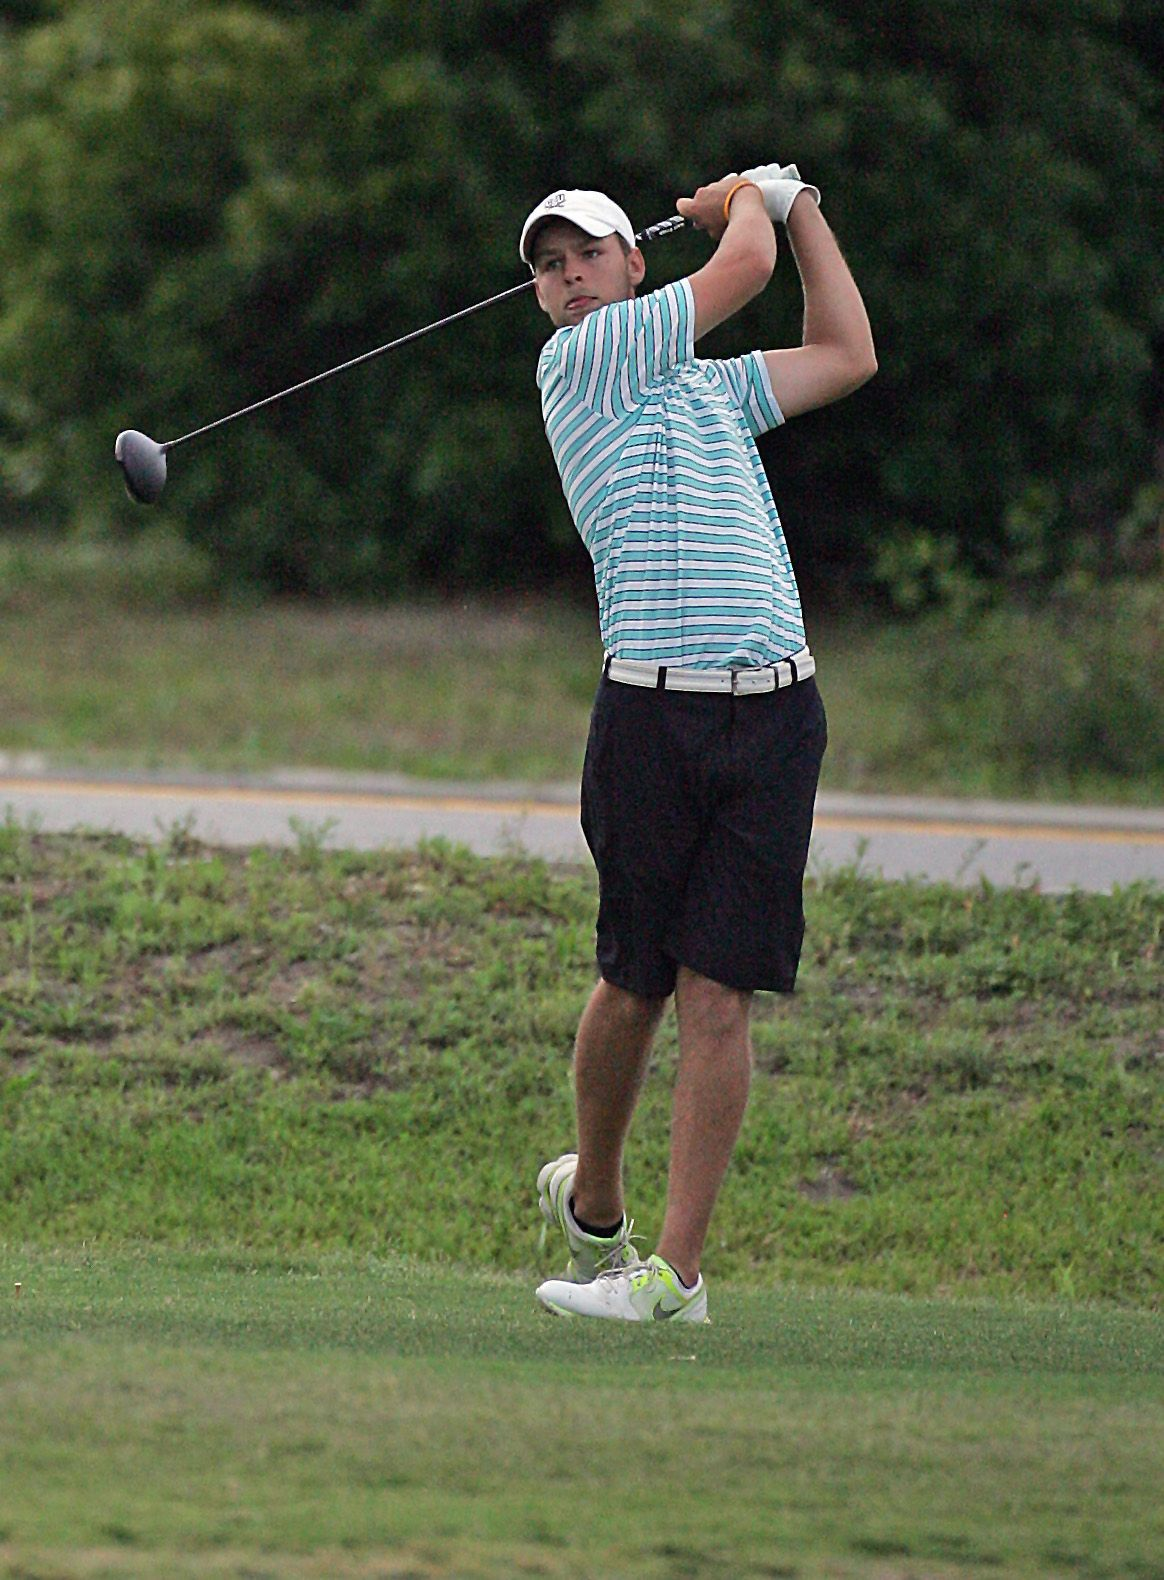 Swan edges Laydon in playoff to win City Am